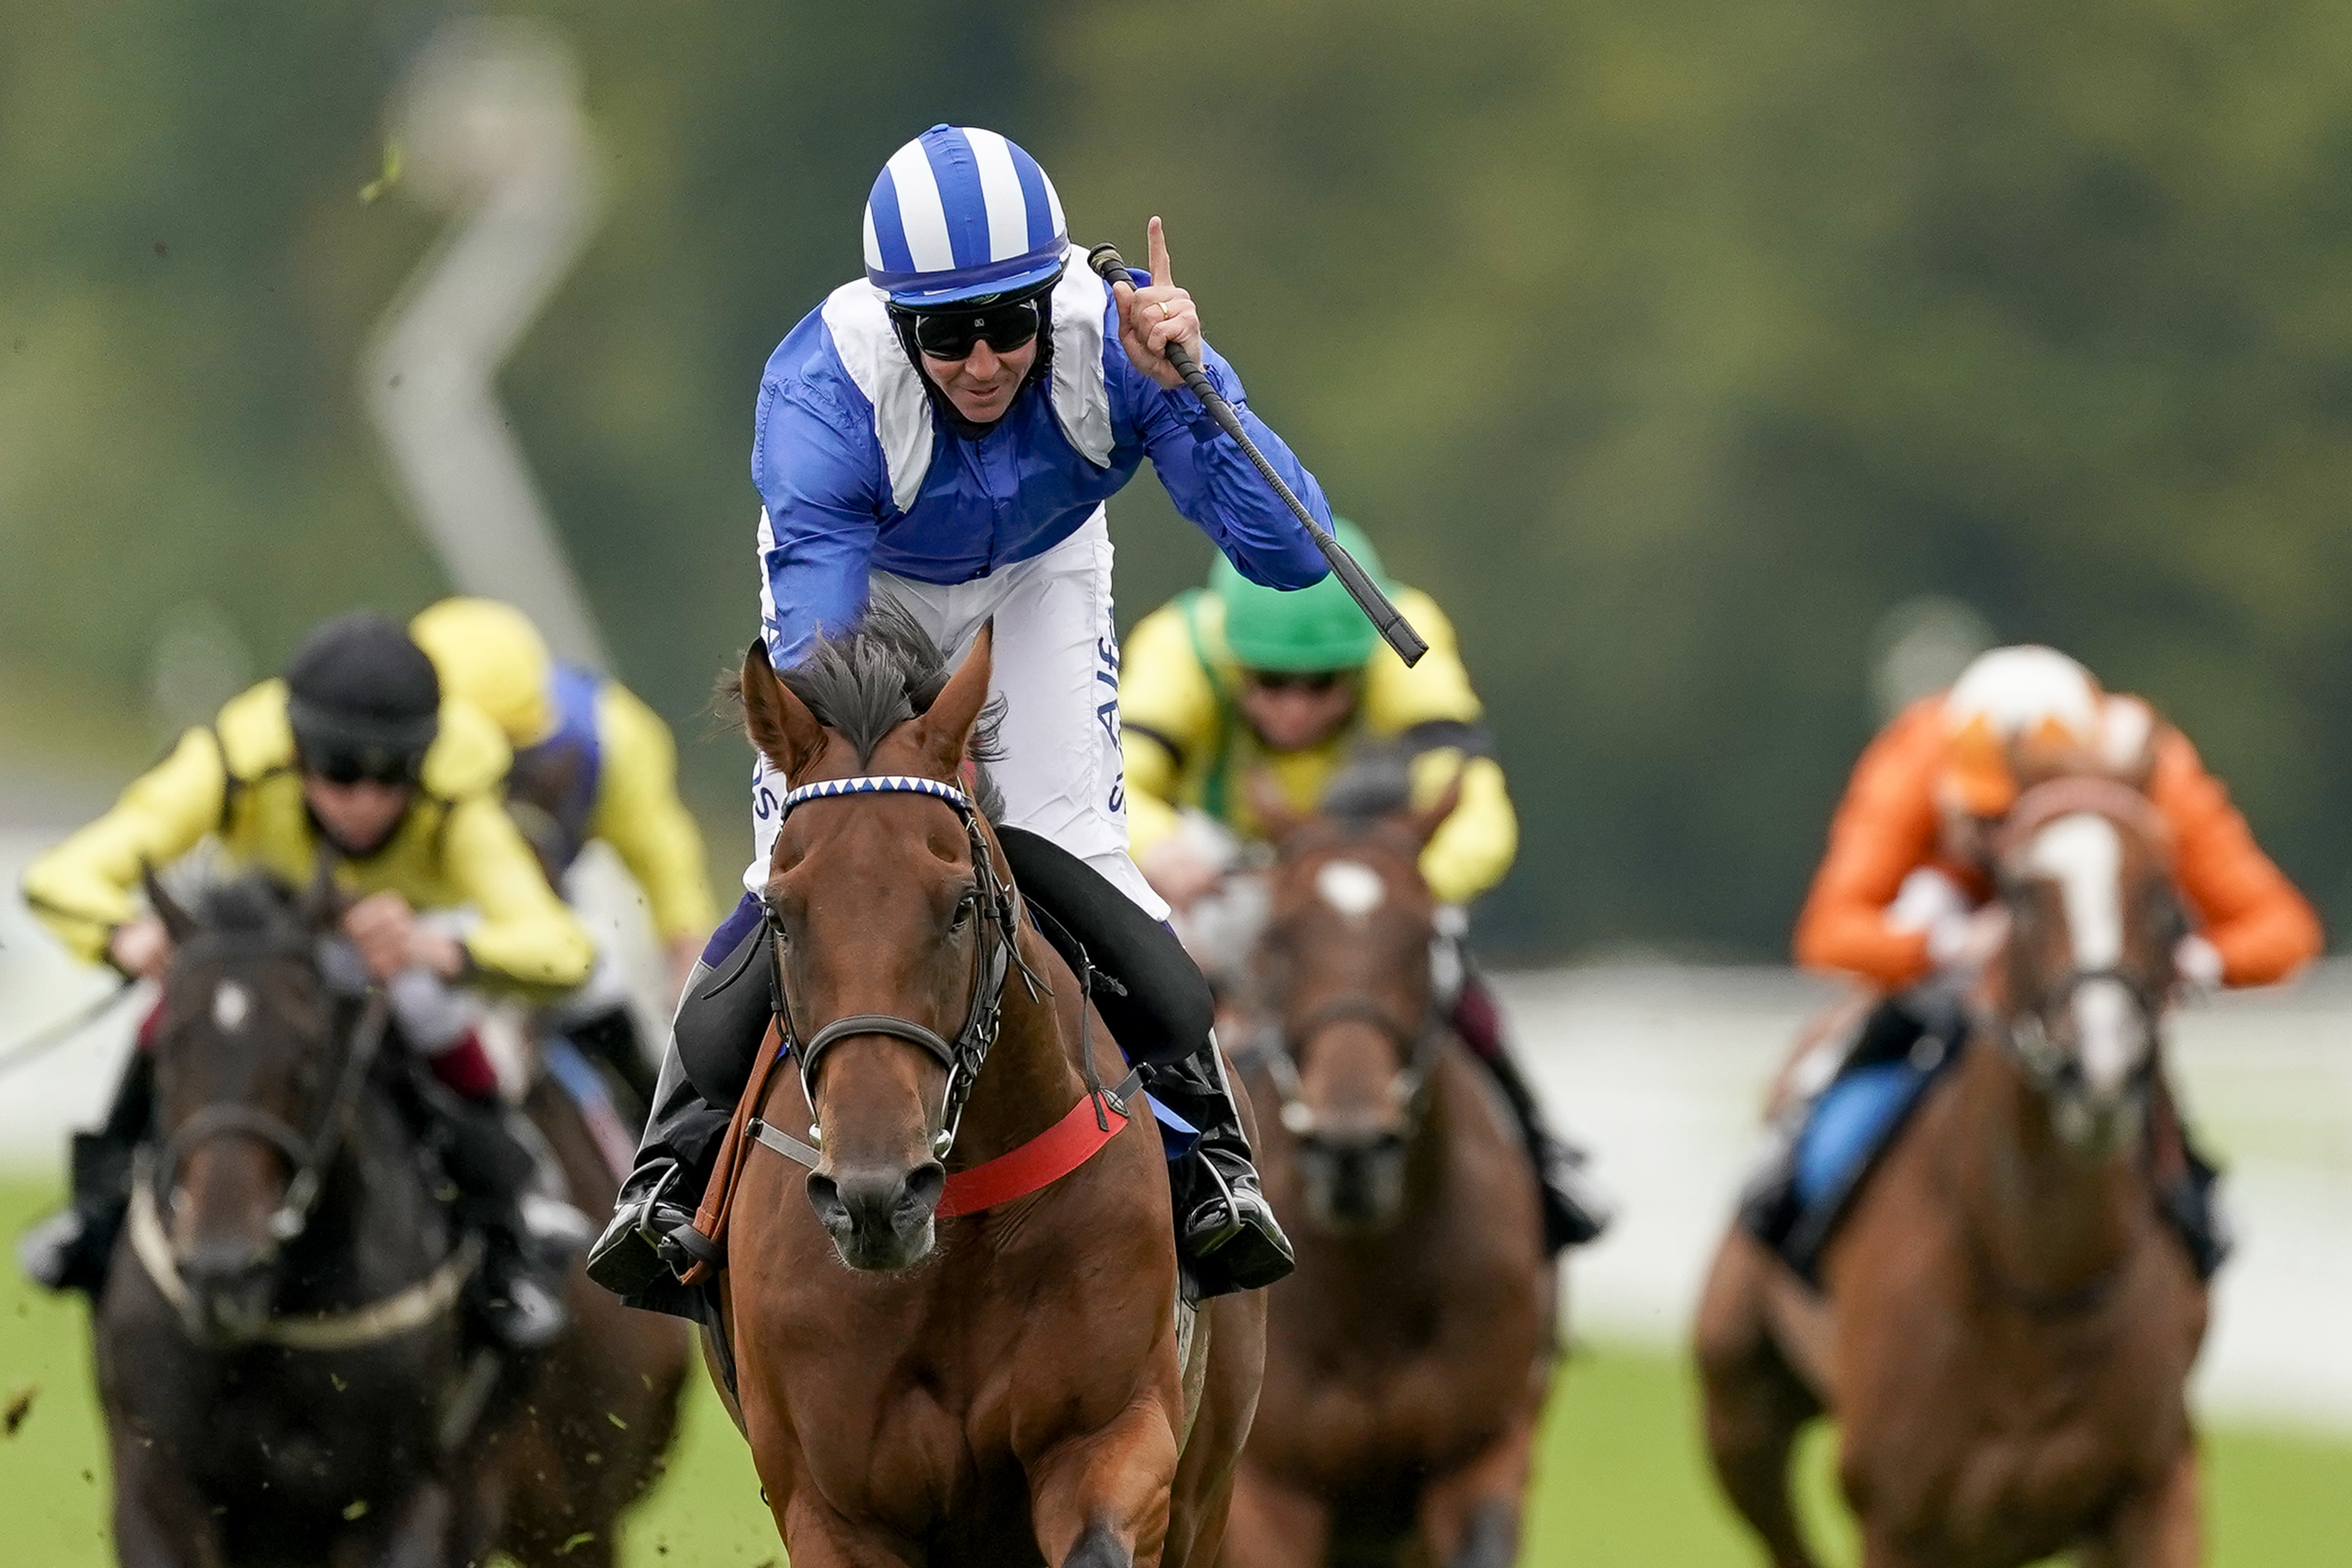 Jim Crowley on board Modmin on their way to winning the The Ladbrokes Supporting 'Children With Cancer UK' Novice Stakes at Goodwood Racecourse, Chichester. Jim Crowley celebrates his two thousandth UK victory in National Hunt and Flat racing